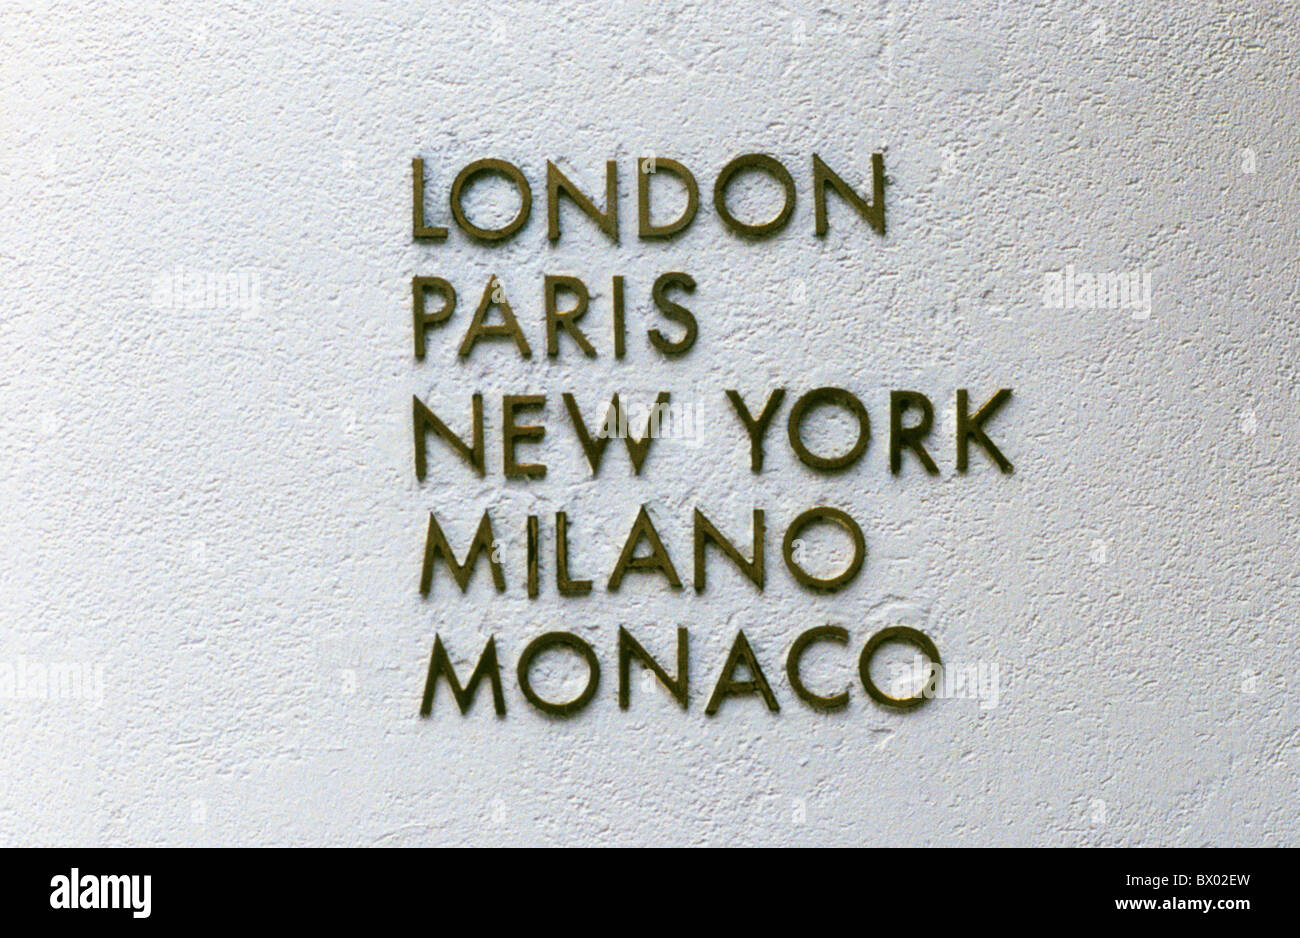 Bahnhofstrasse street geography house wall London Milano fashion house Monaco New York Paris towns cities - Stock Image